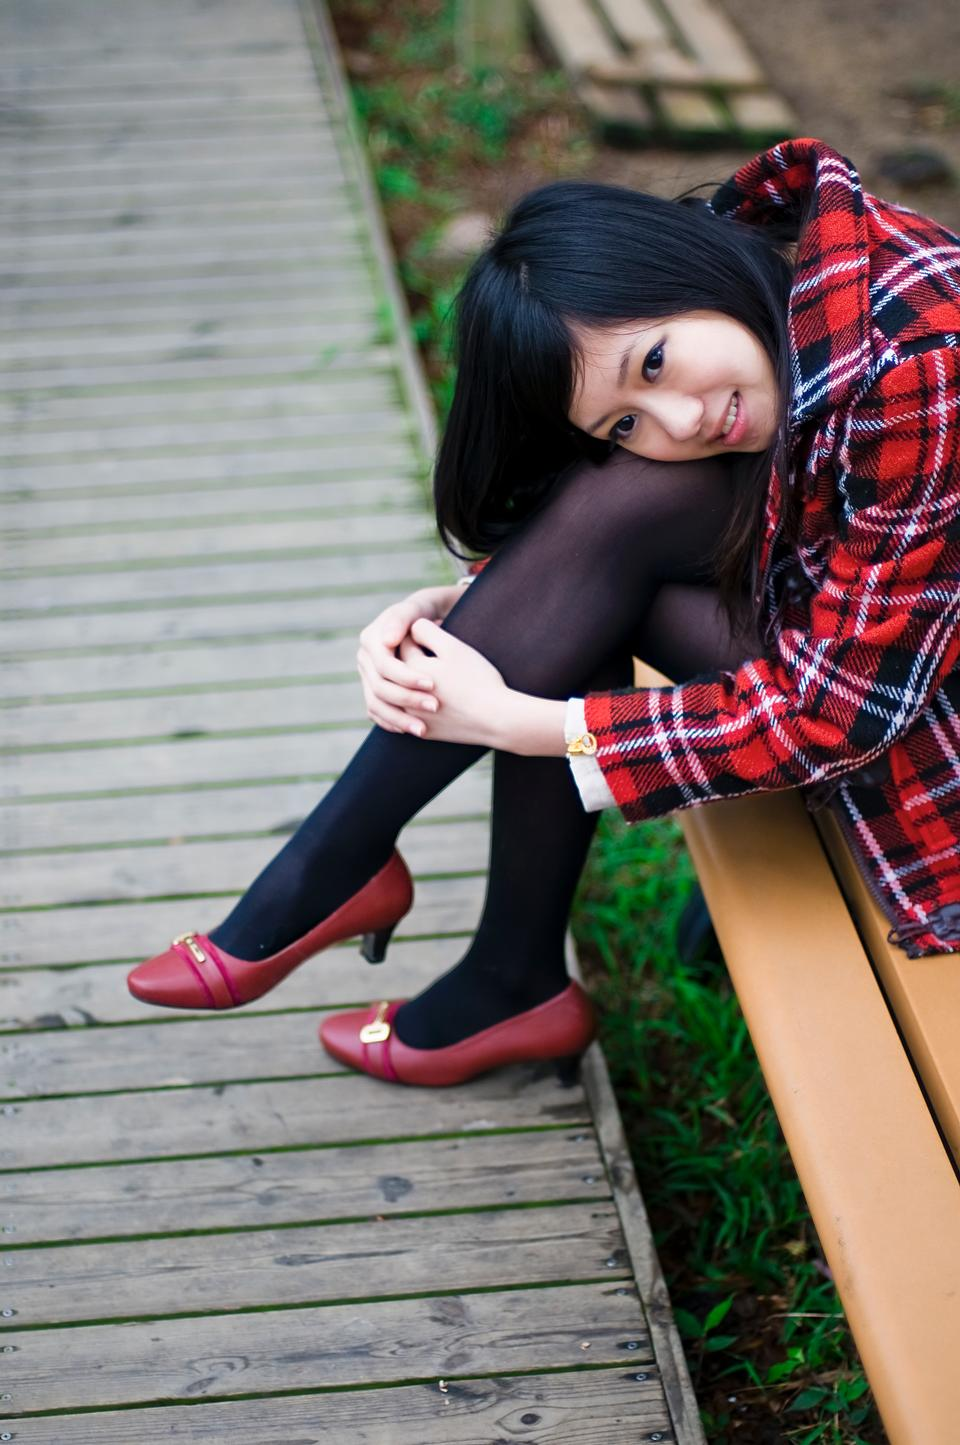 Free Japanese Girl Posing On A Bench